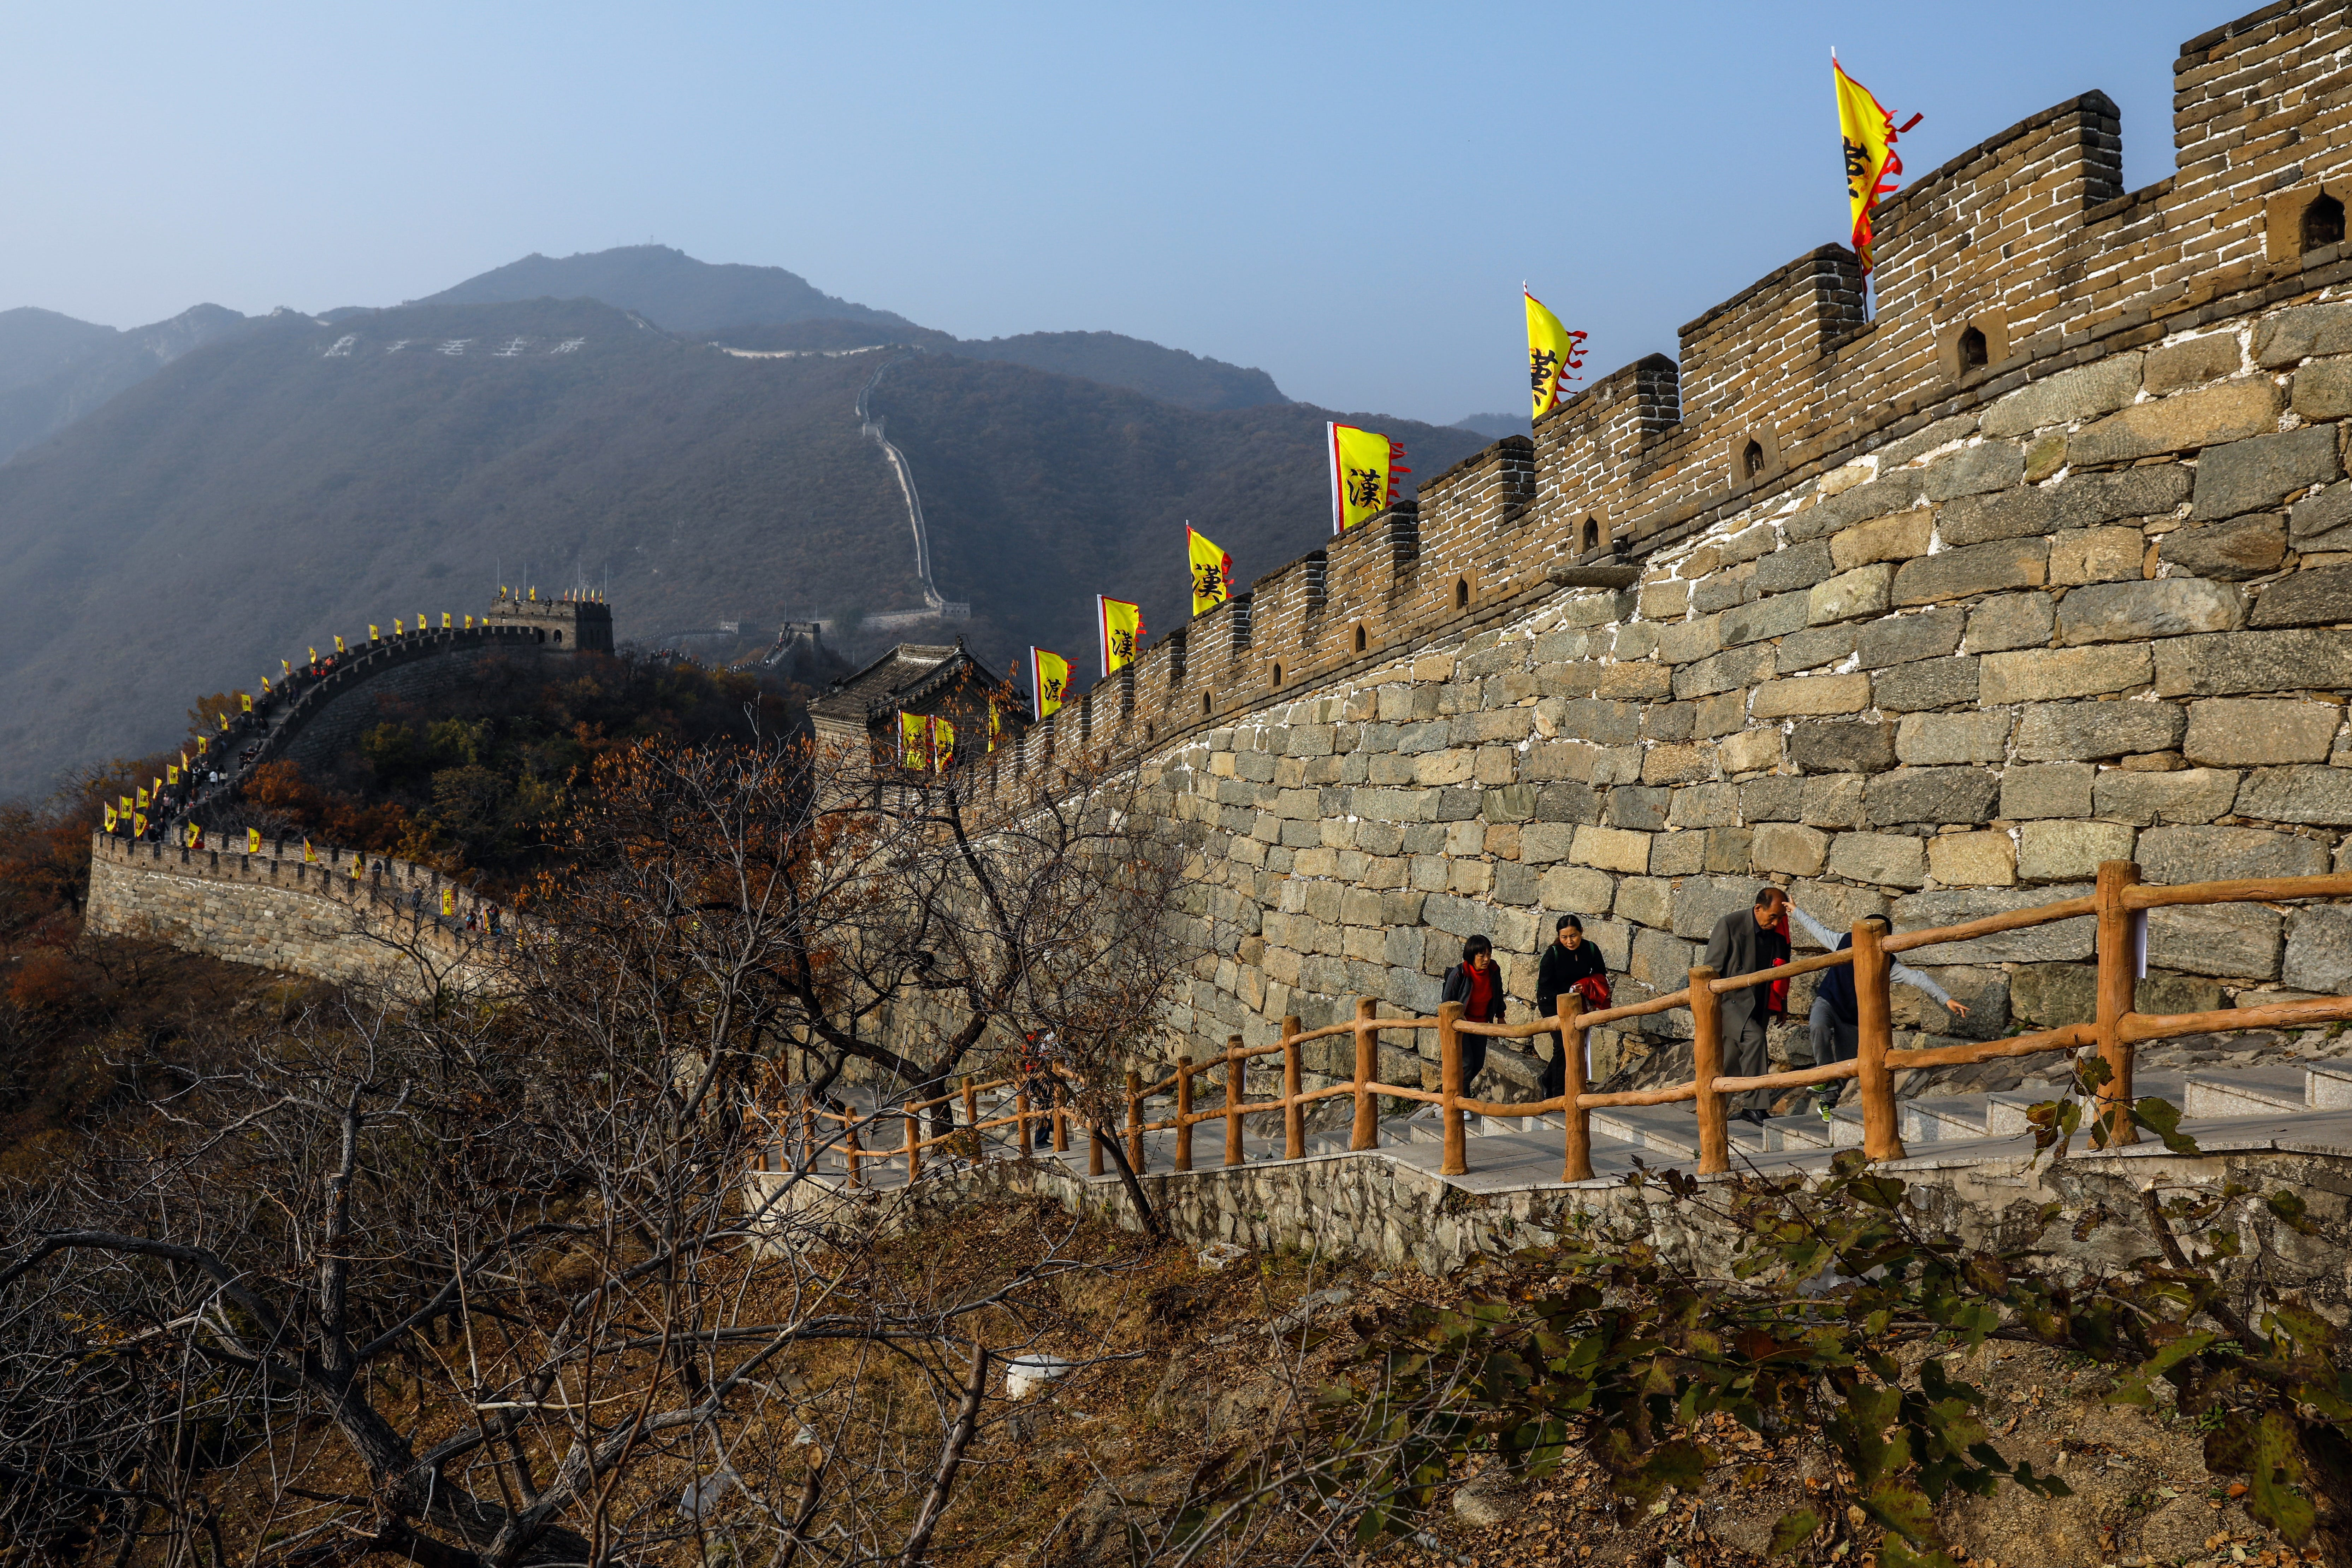 U.S. State Department urges 'increased caution' when traveling to China